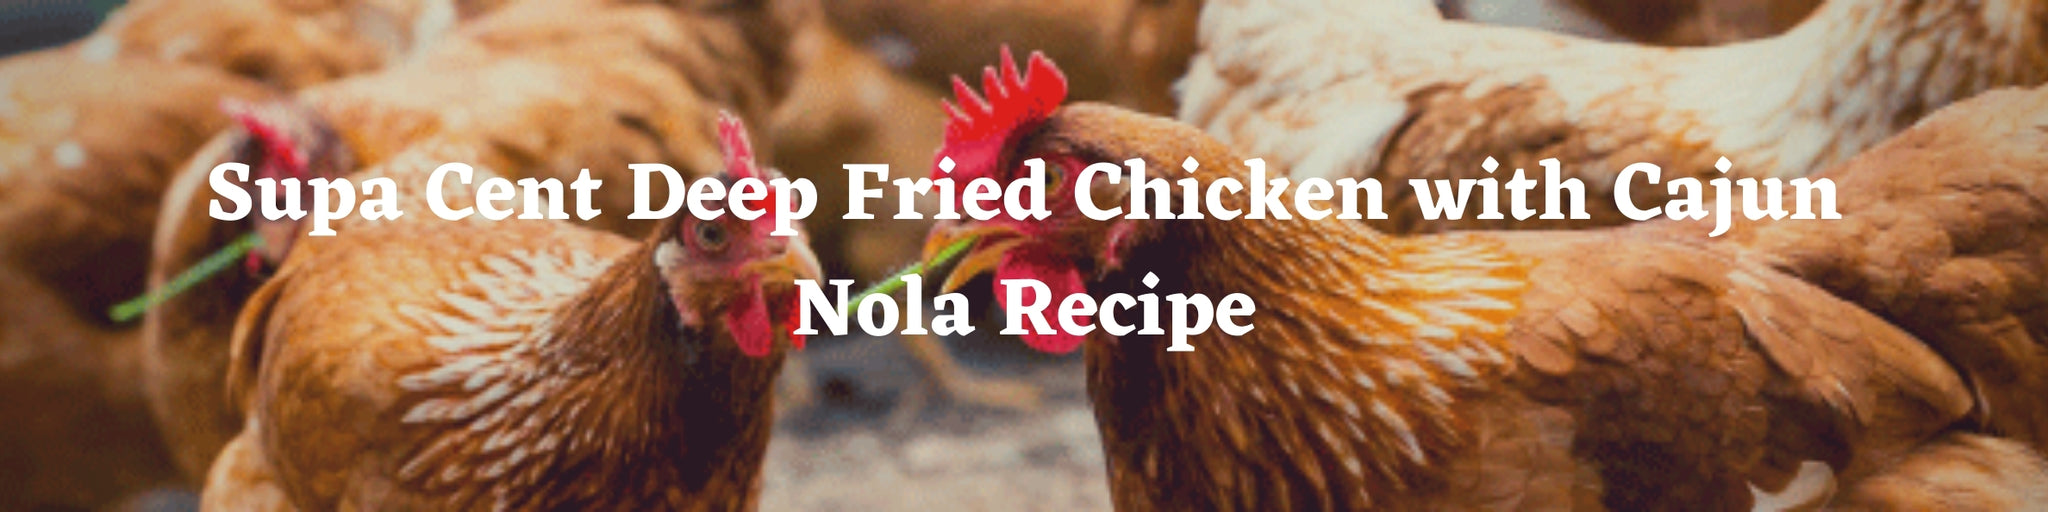 Supa Cent Deep Fried Chicken with Cajun Nola Recipe